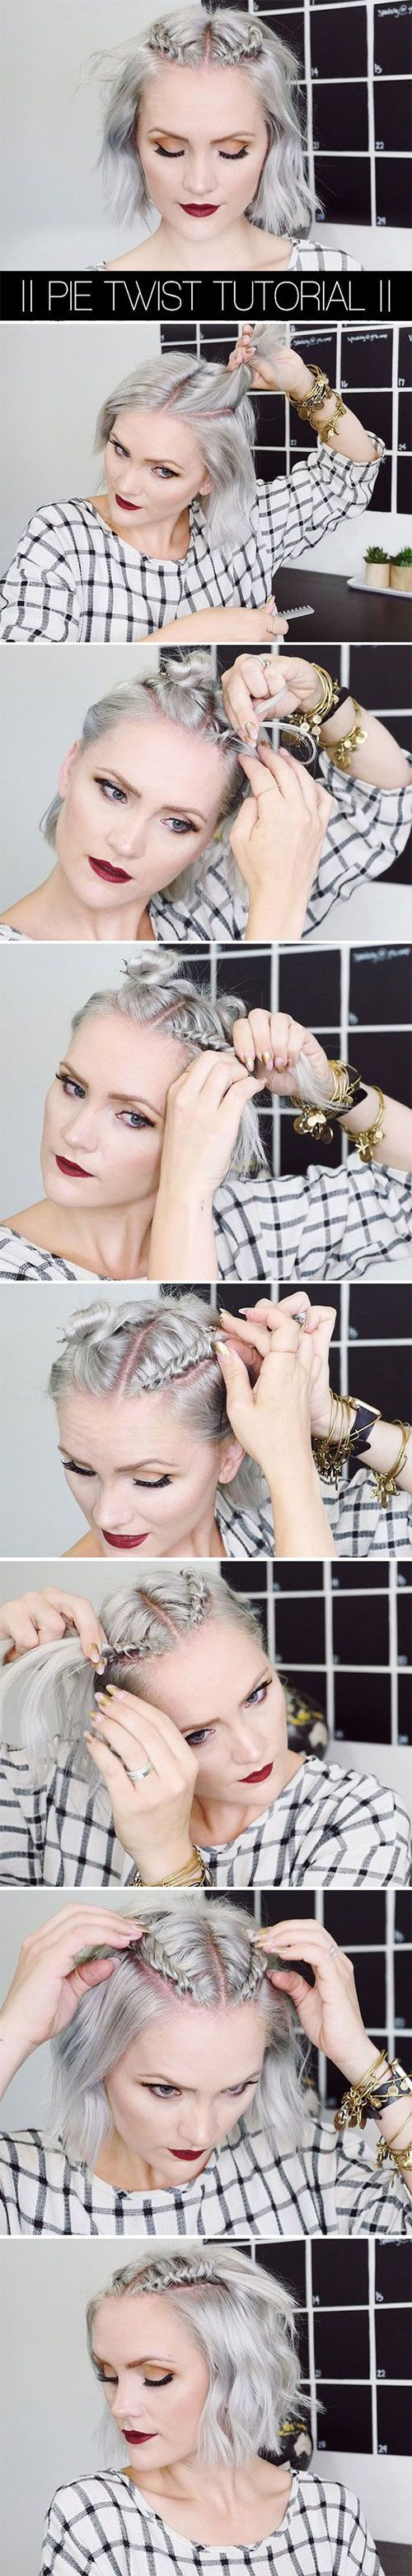 cute half-up, half-down hairstyles for people with short hair